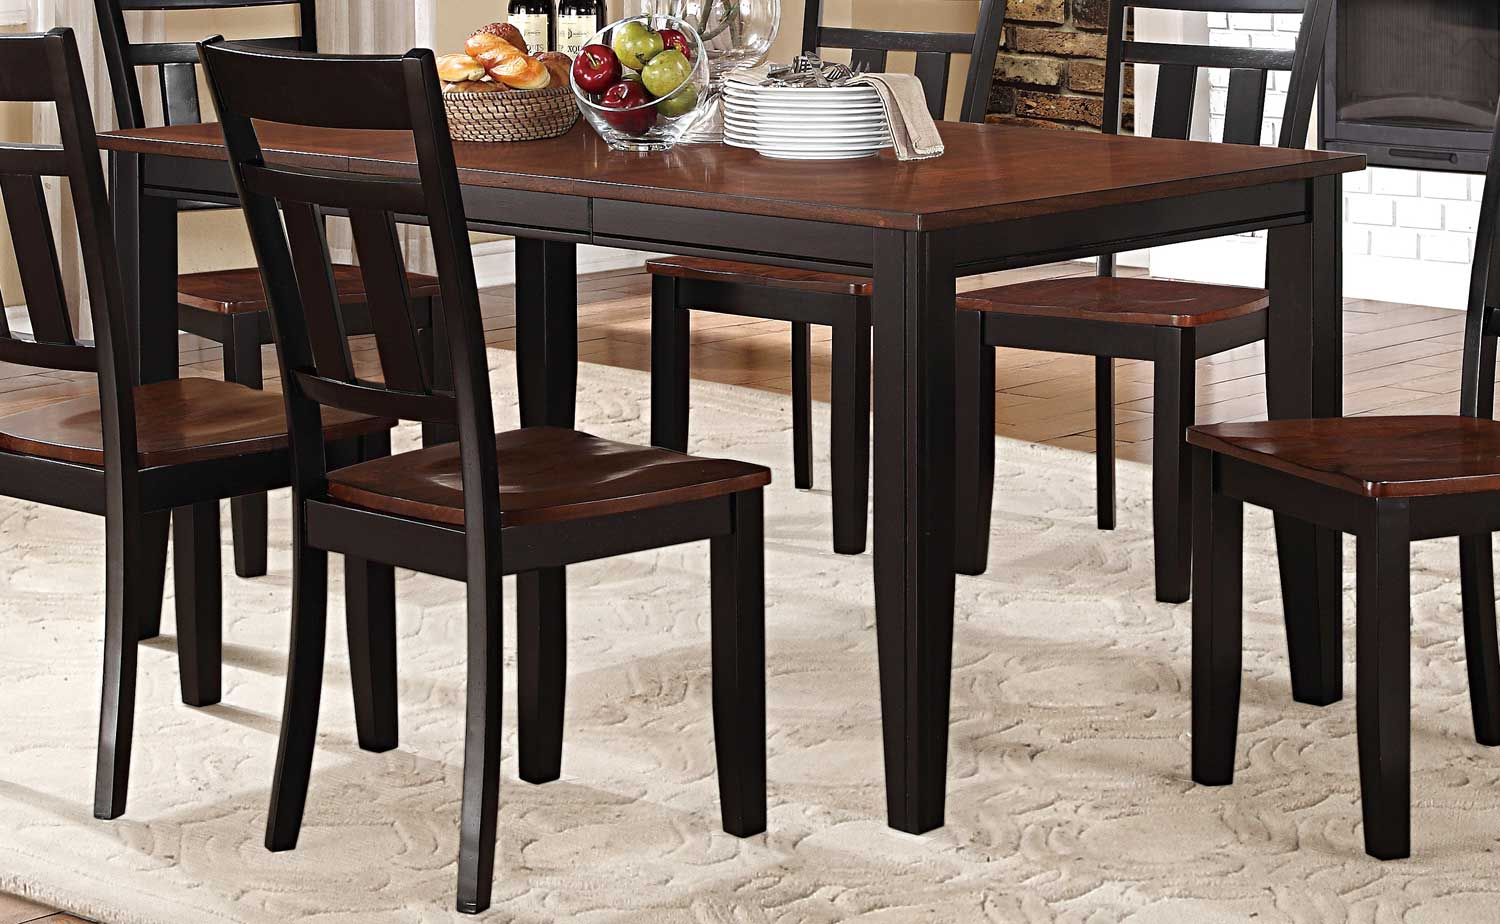 homelegance westport dining table two tone black cherry 5079bk 66 at. Black Bedroom Furniture Sets. Home Design Ideas